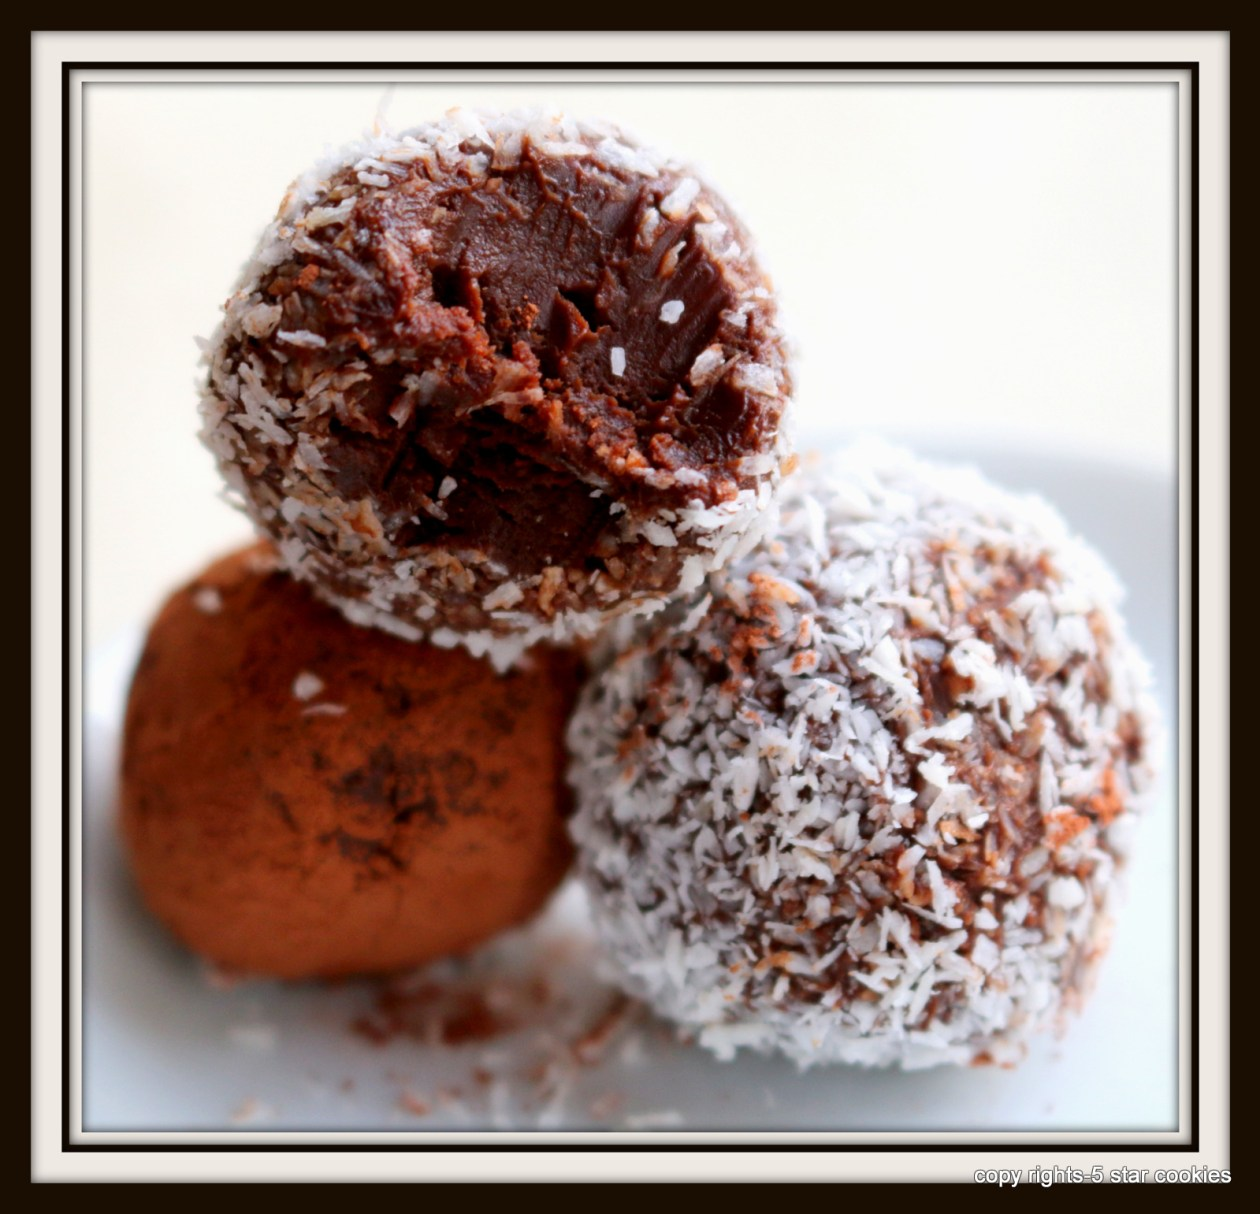 chocolate truffle from the best food blog 5starcookies